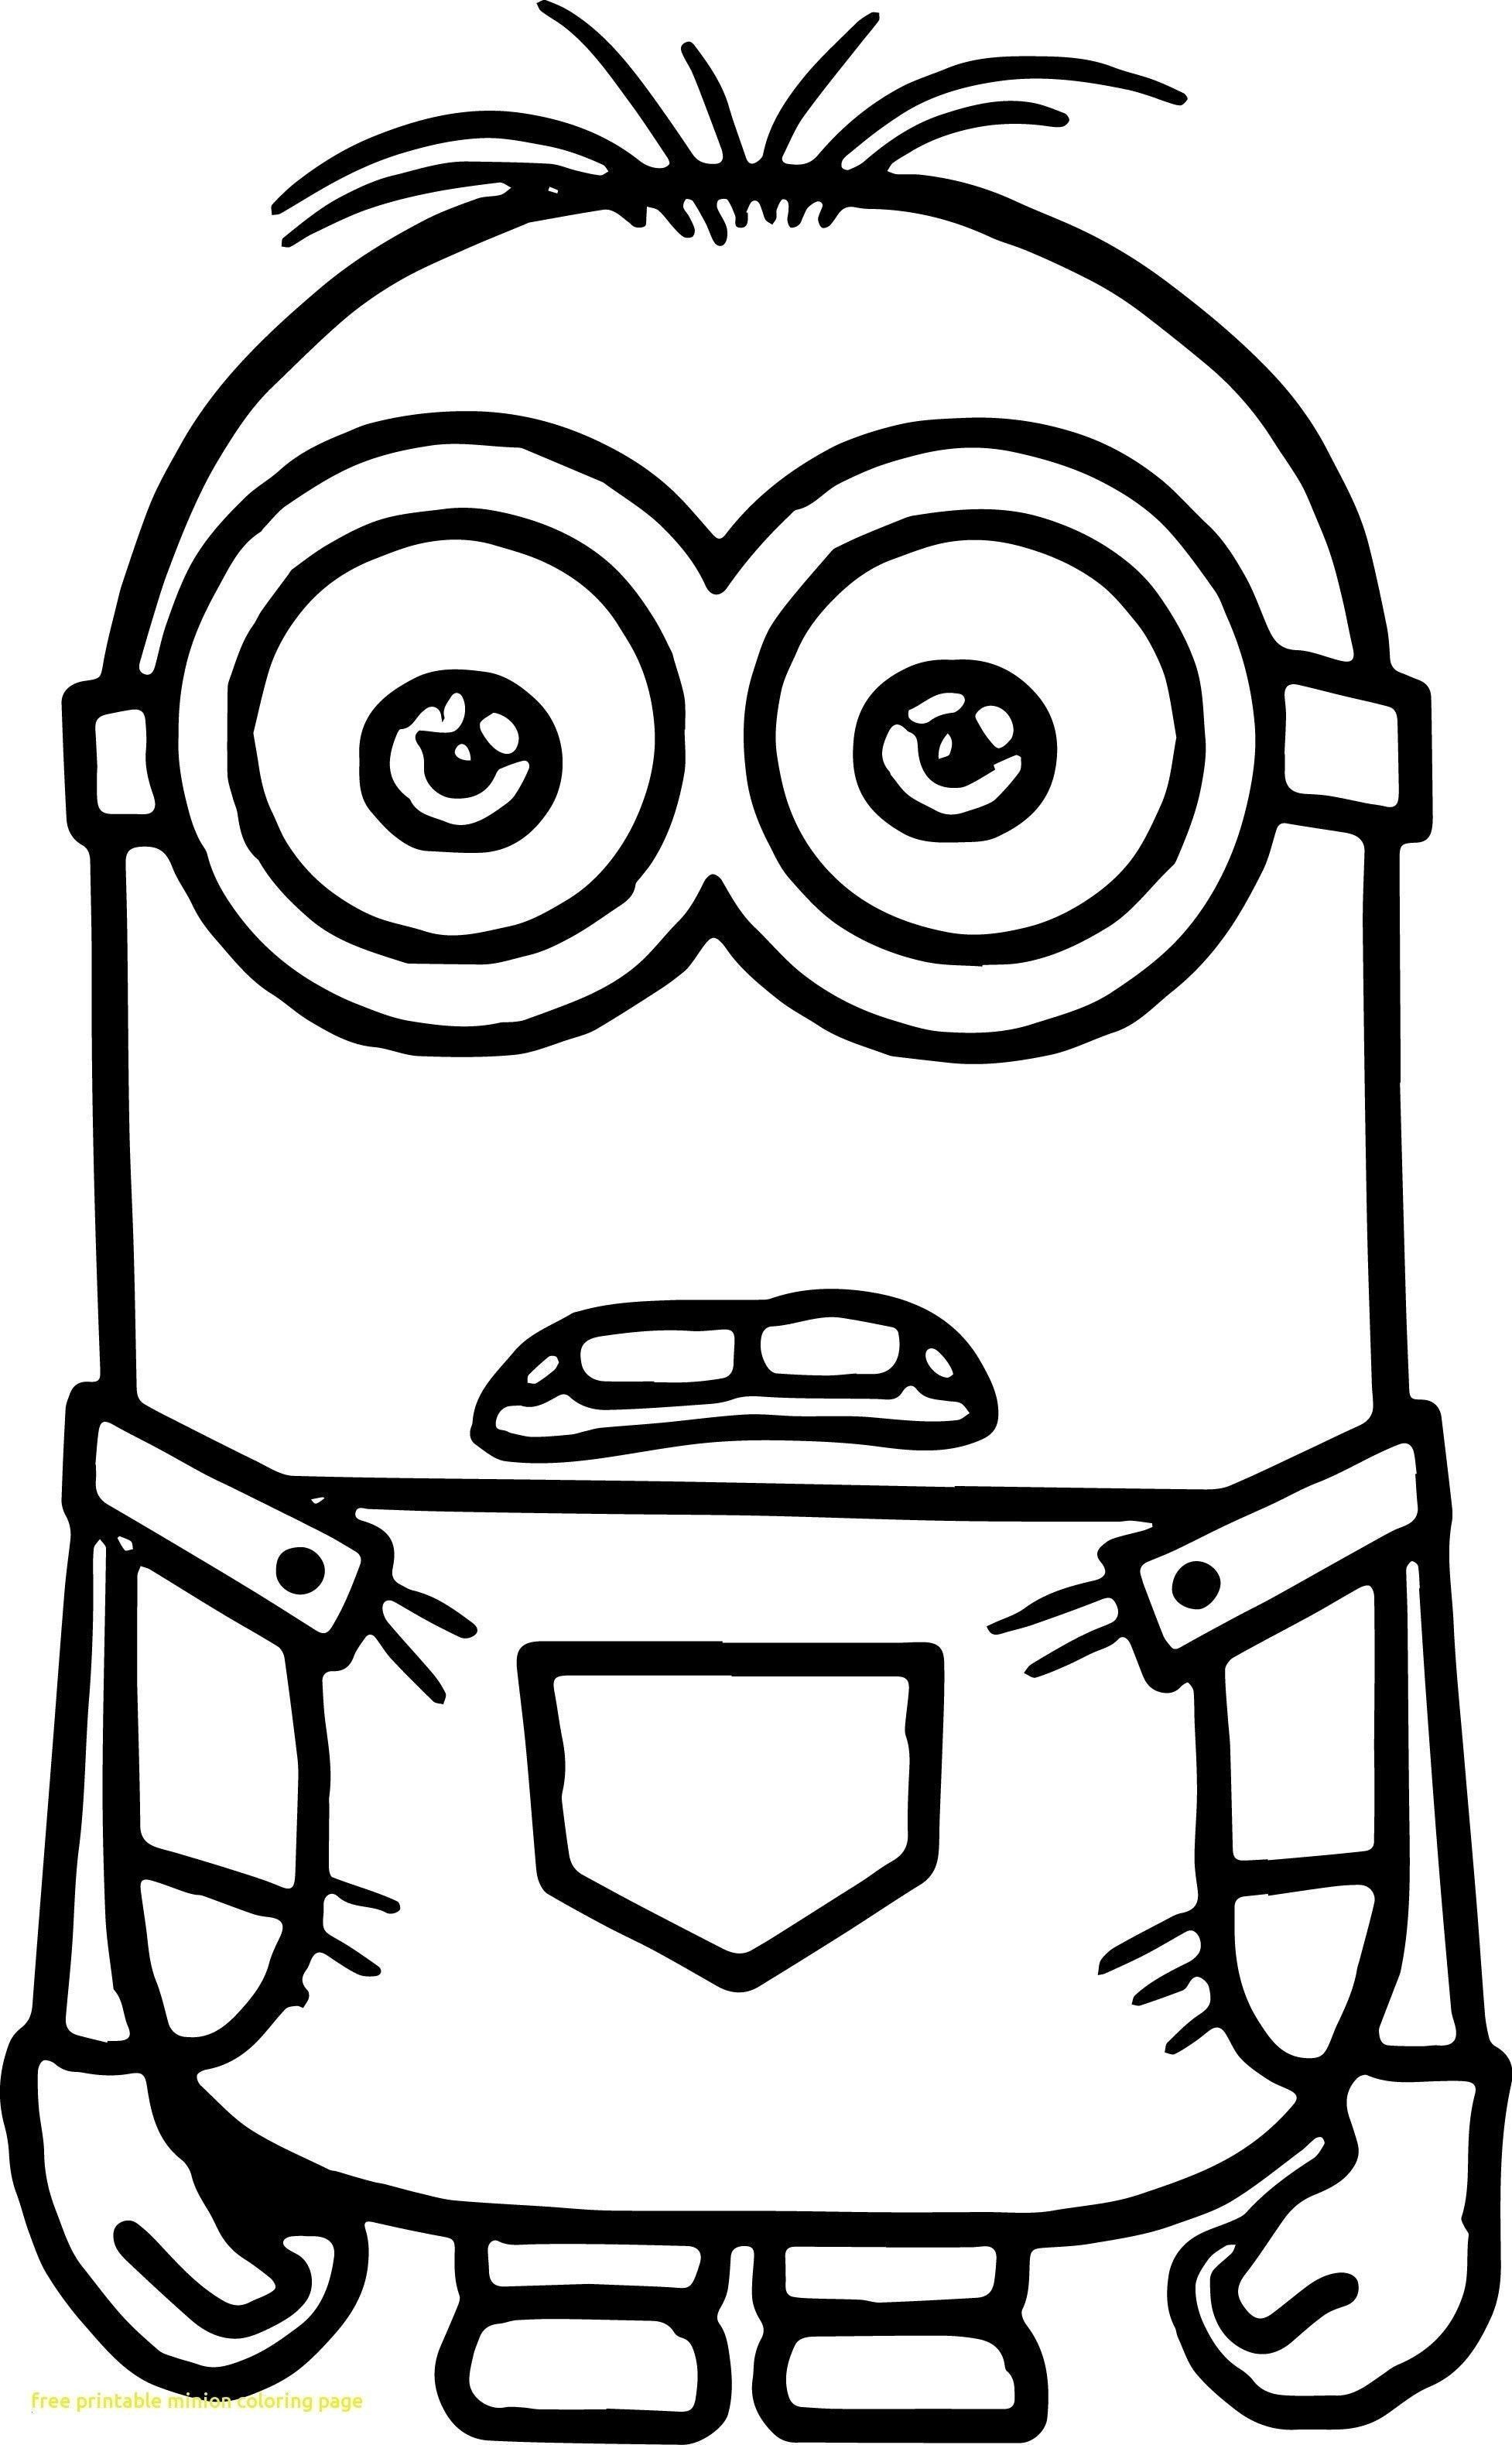 Minions Coloring Pages To Print Inspirational Best Printable